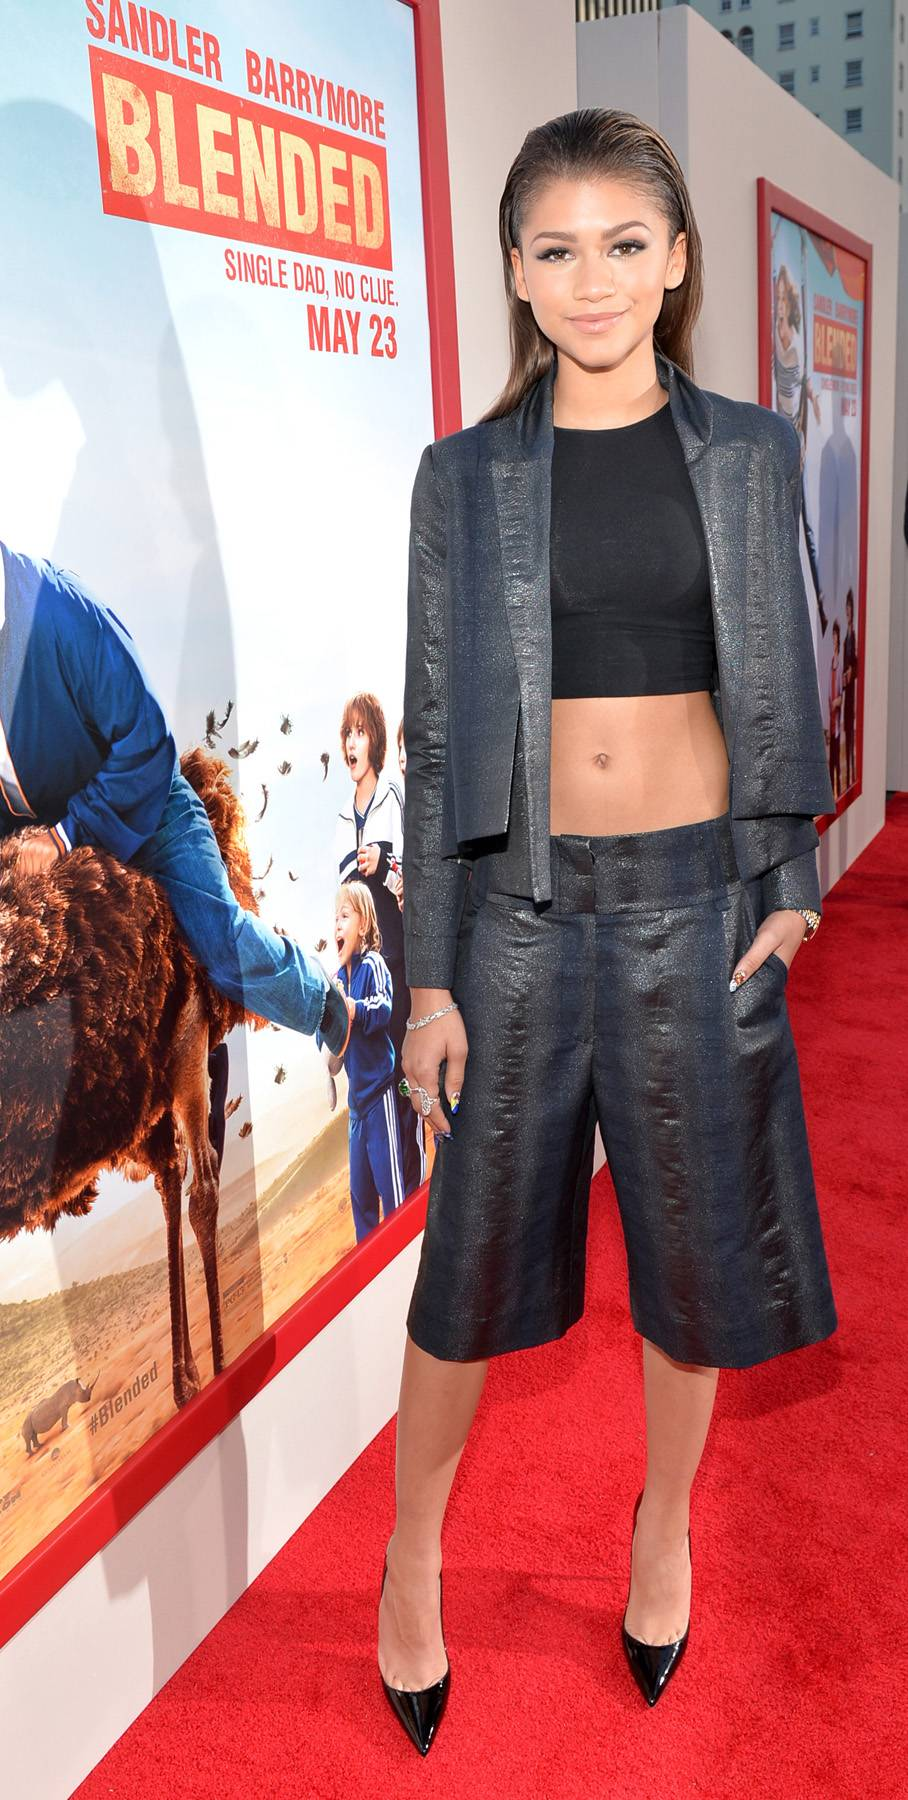 Cropped and Cute - The star does the cropped trend right, turning it out in an abs-baring top, cropped trousers and matching jacket at the L.A. movie premiere of Blended. Showing off her stunning features, she finishes with dewy skin and trademark slicked back 'do.  (Photo: Alberto E. Rodriguez/Getty Images)